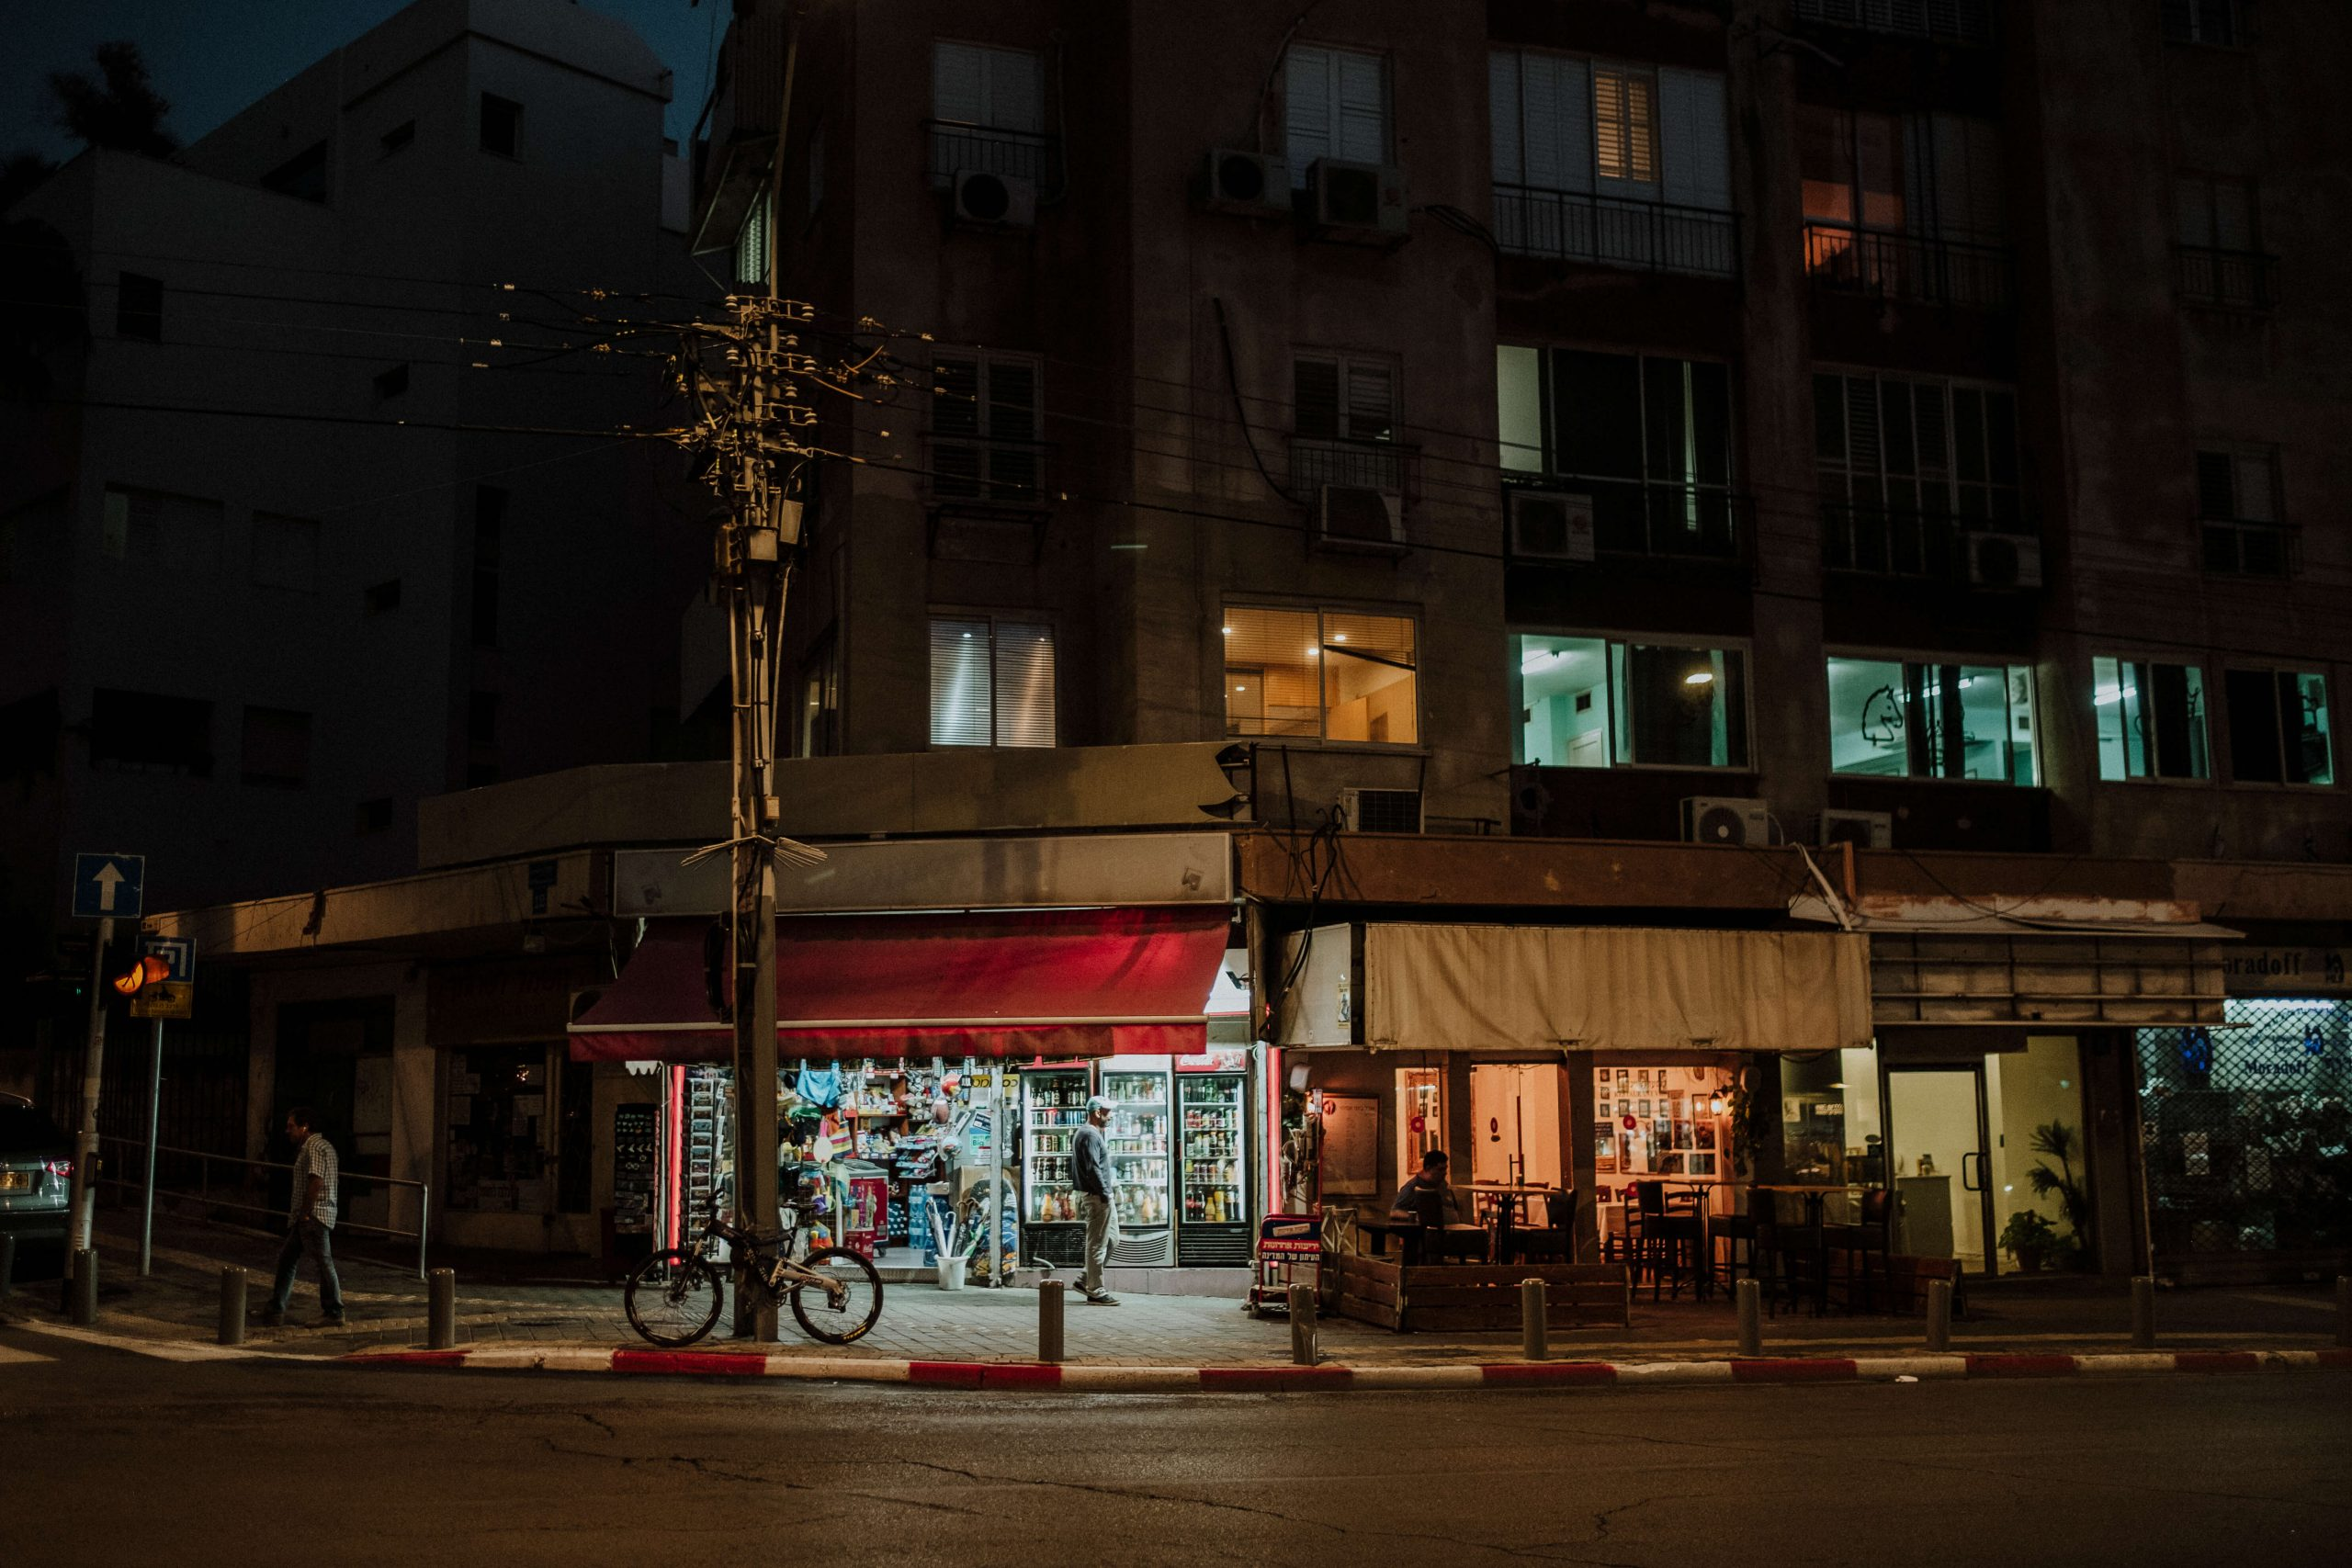 elisabetta riccio - urban vision - crossing a street illuminated by artificial light in Tel Aviv, a man is in front of a shop